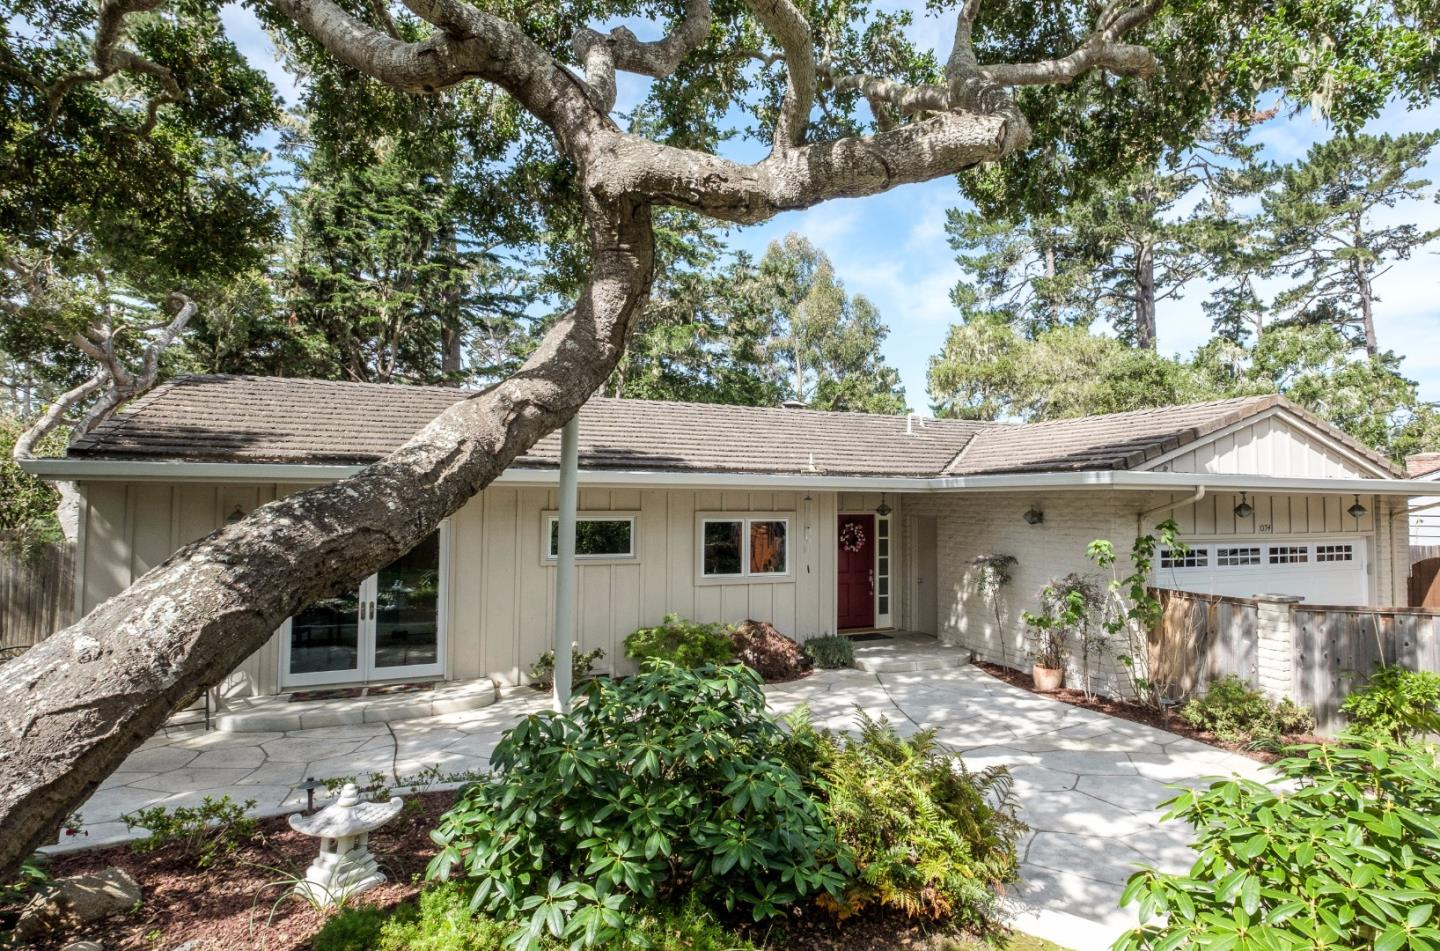 Single Family Home for Sale at 1074 Mission Road 1074 Mission Road Pebble Beach, California 93953 United States